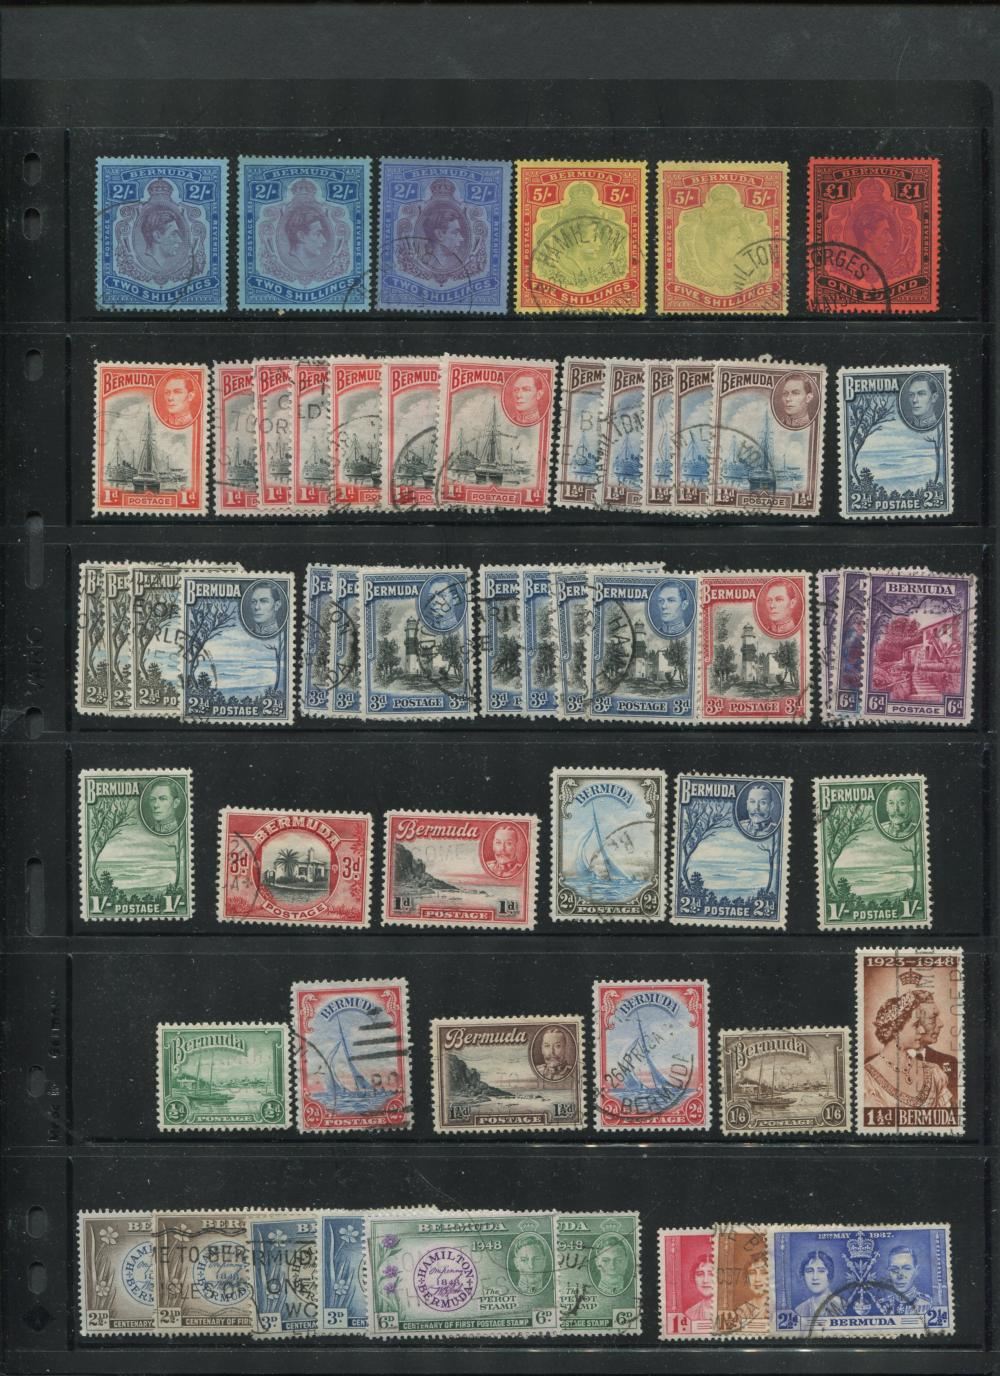 Bermuda Stamp Collection 2